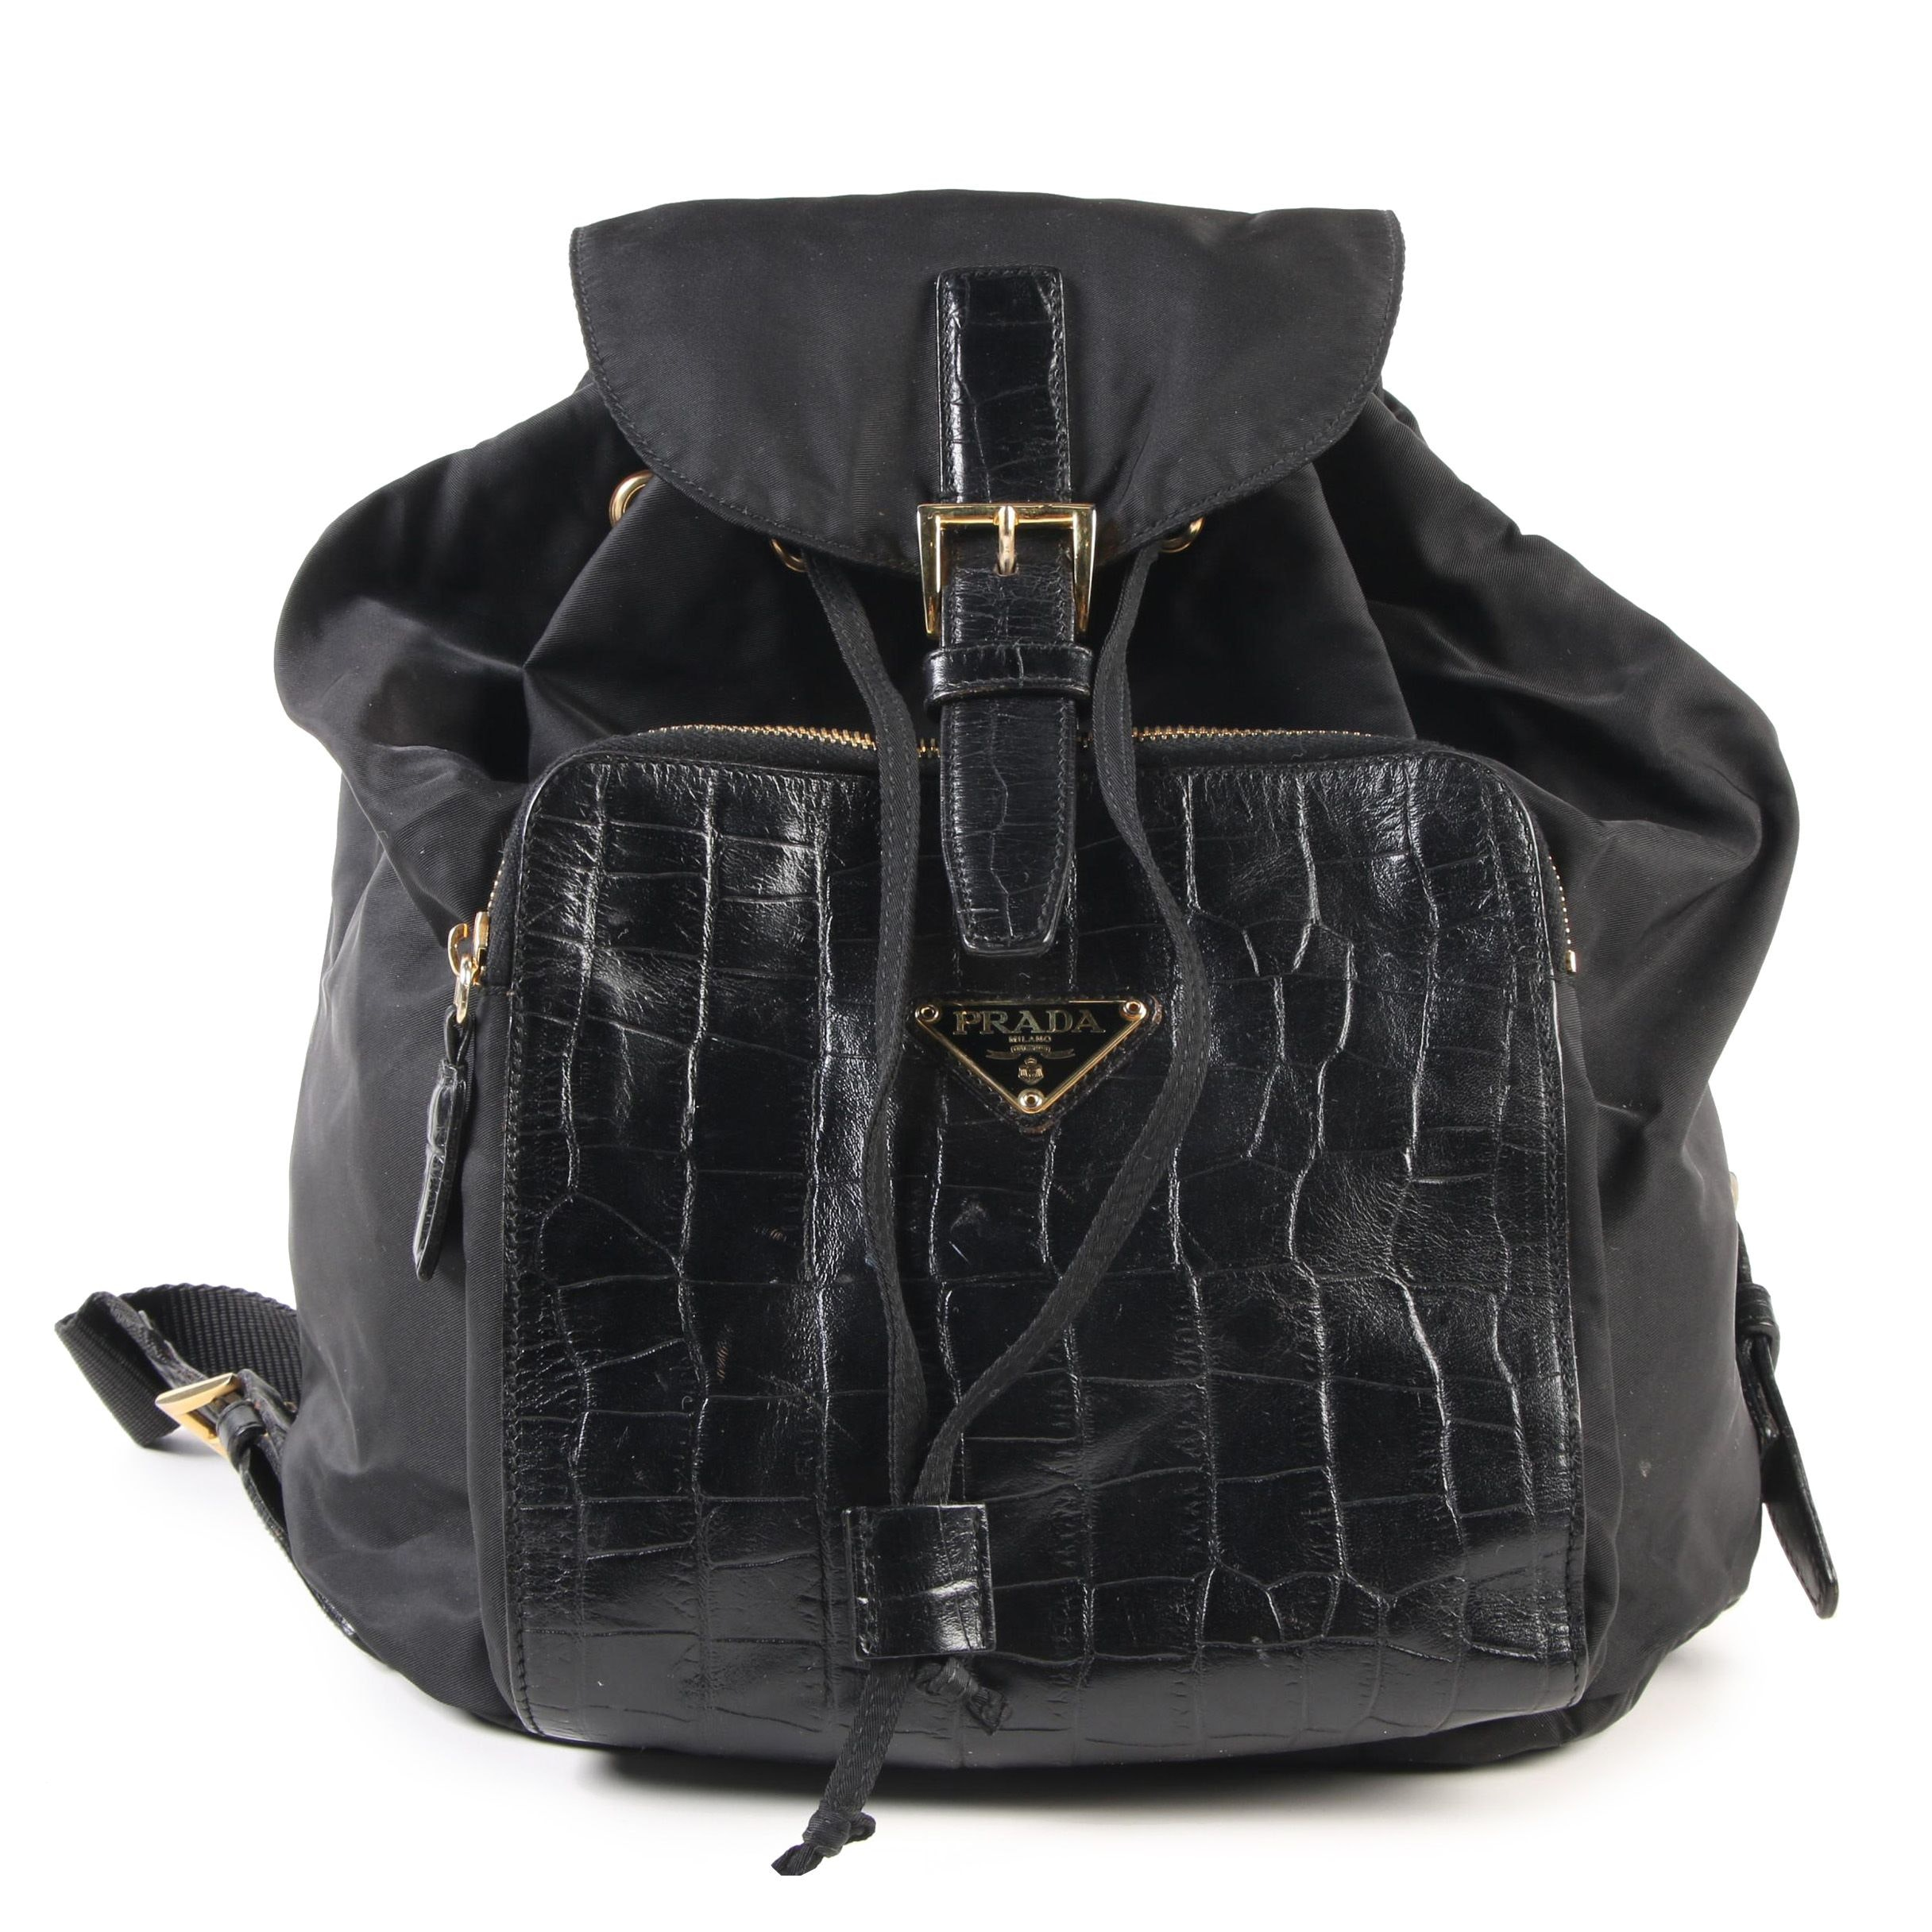 Prada Black Nylon and Alligator Embossed Leather Backpack